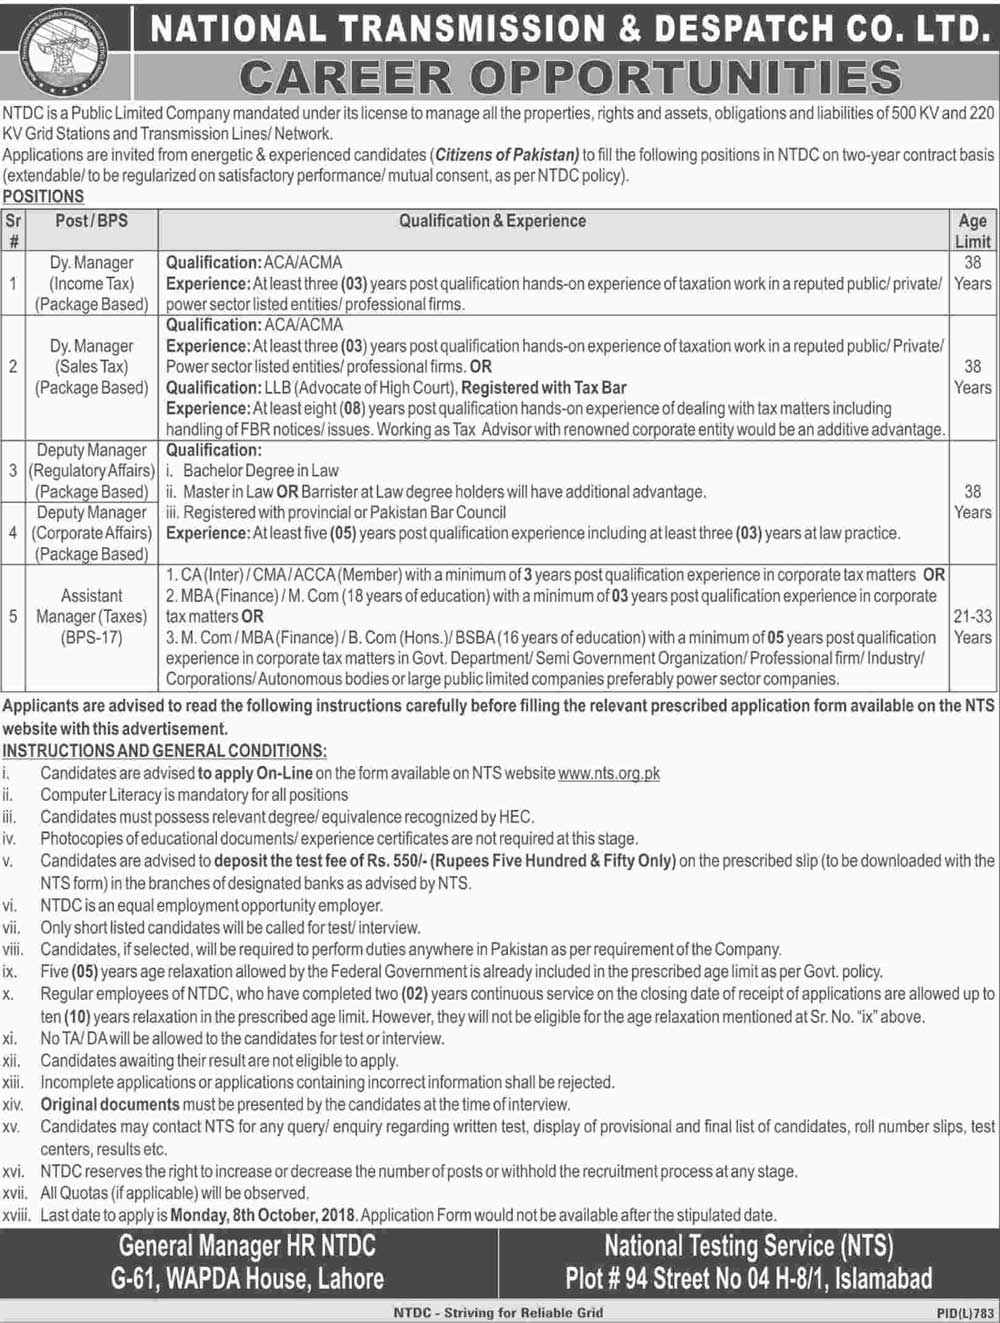 NTDC National Transmission Dispatch Company BPS 17 18 Jobs Via NTS